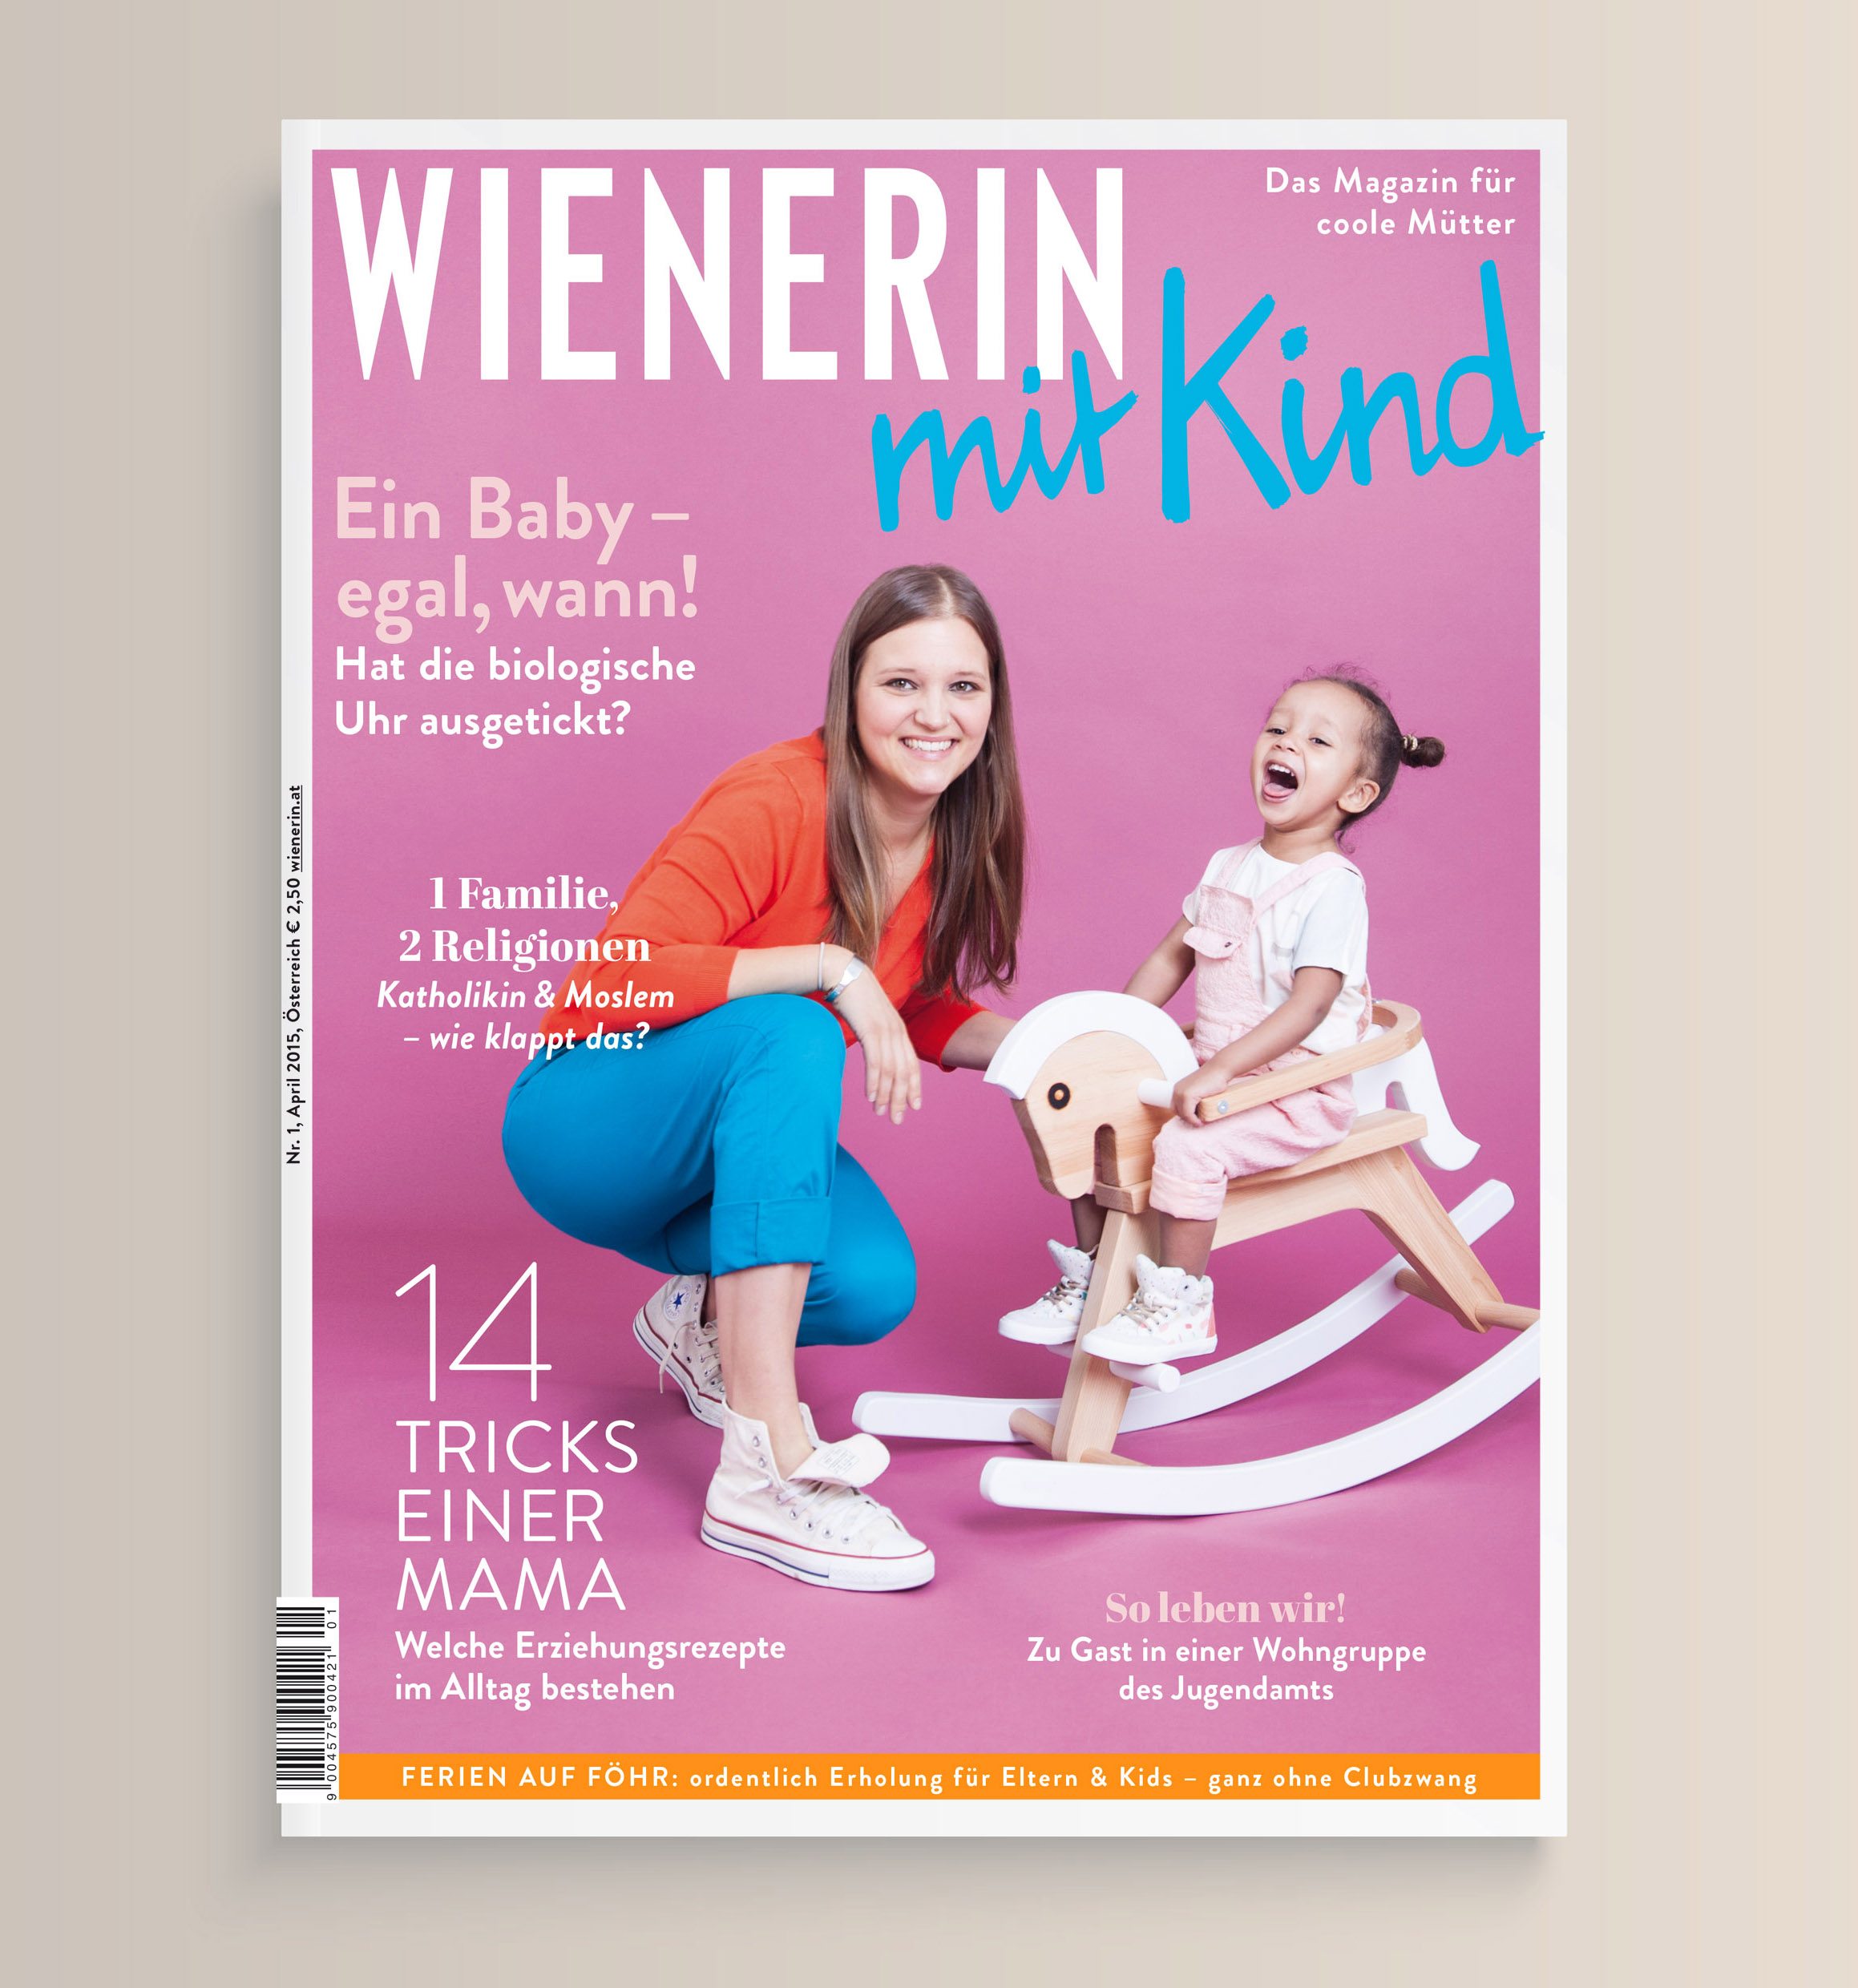 Grafikdesign Agentur Viktoria Platzer Editorial Design Wienerin mit Kind